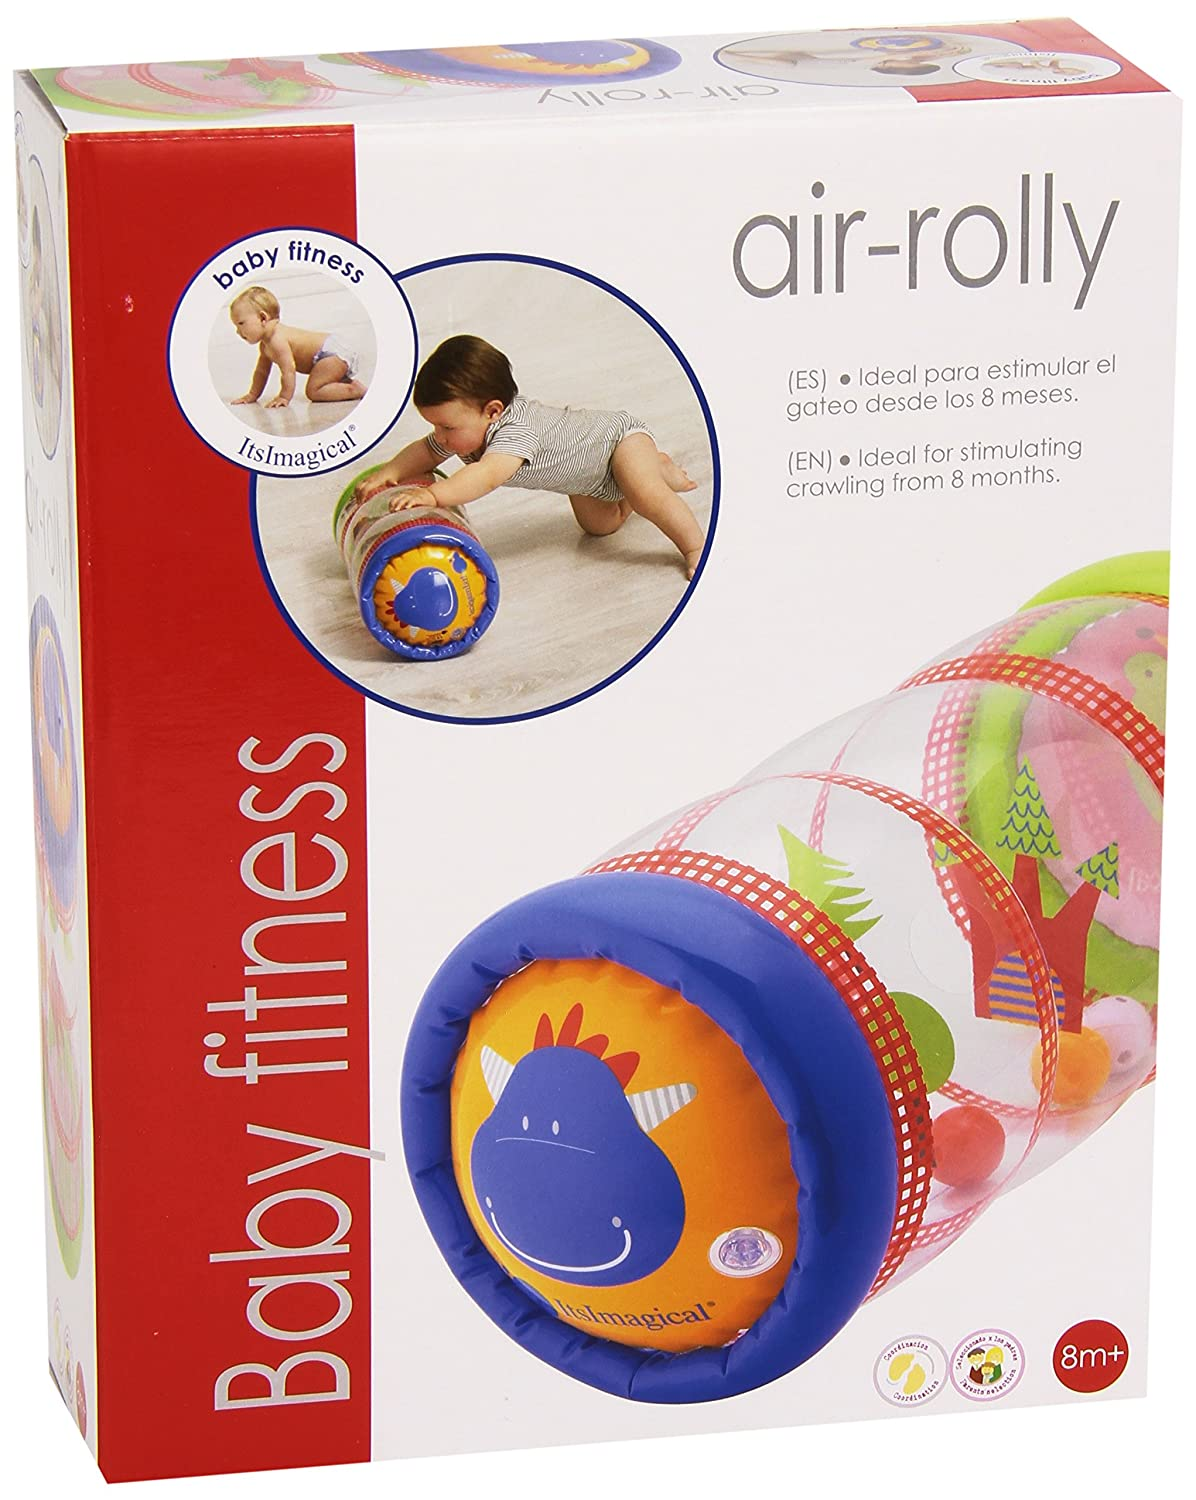 itsImagical - Baby Fitness Air-Rolly, Hinchable sonajero para ...